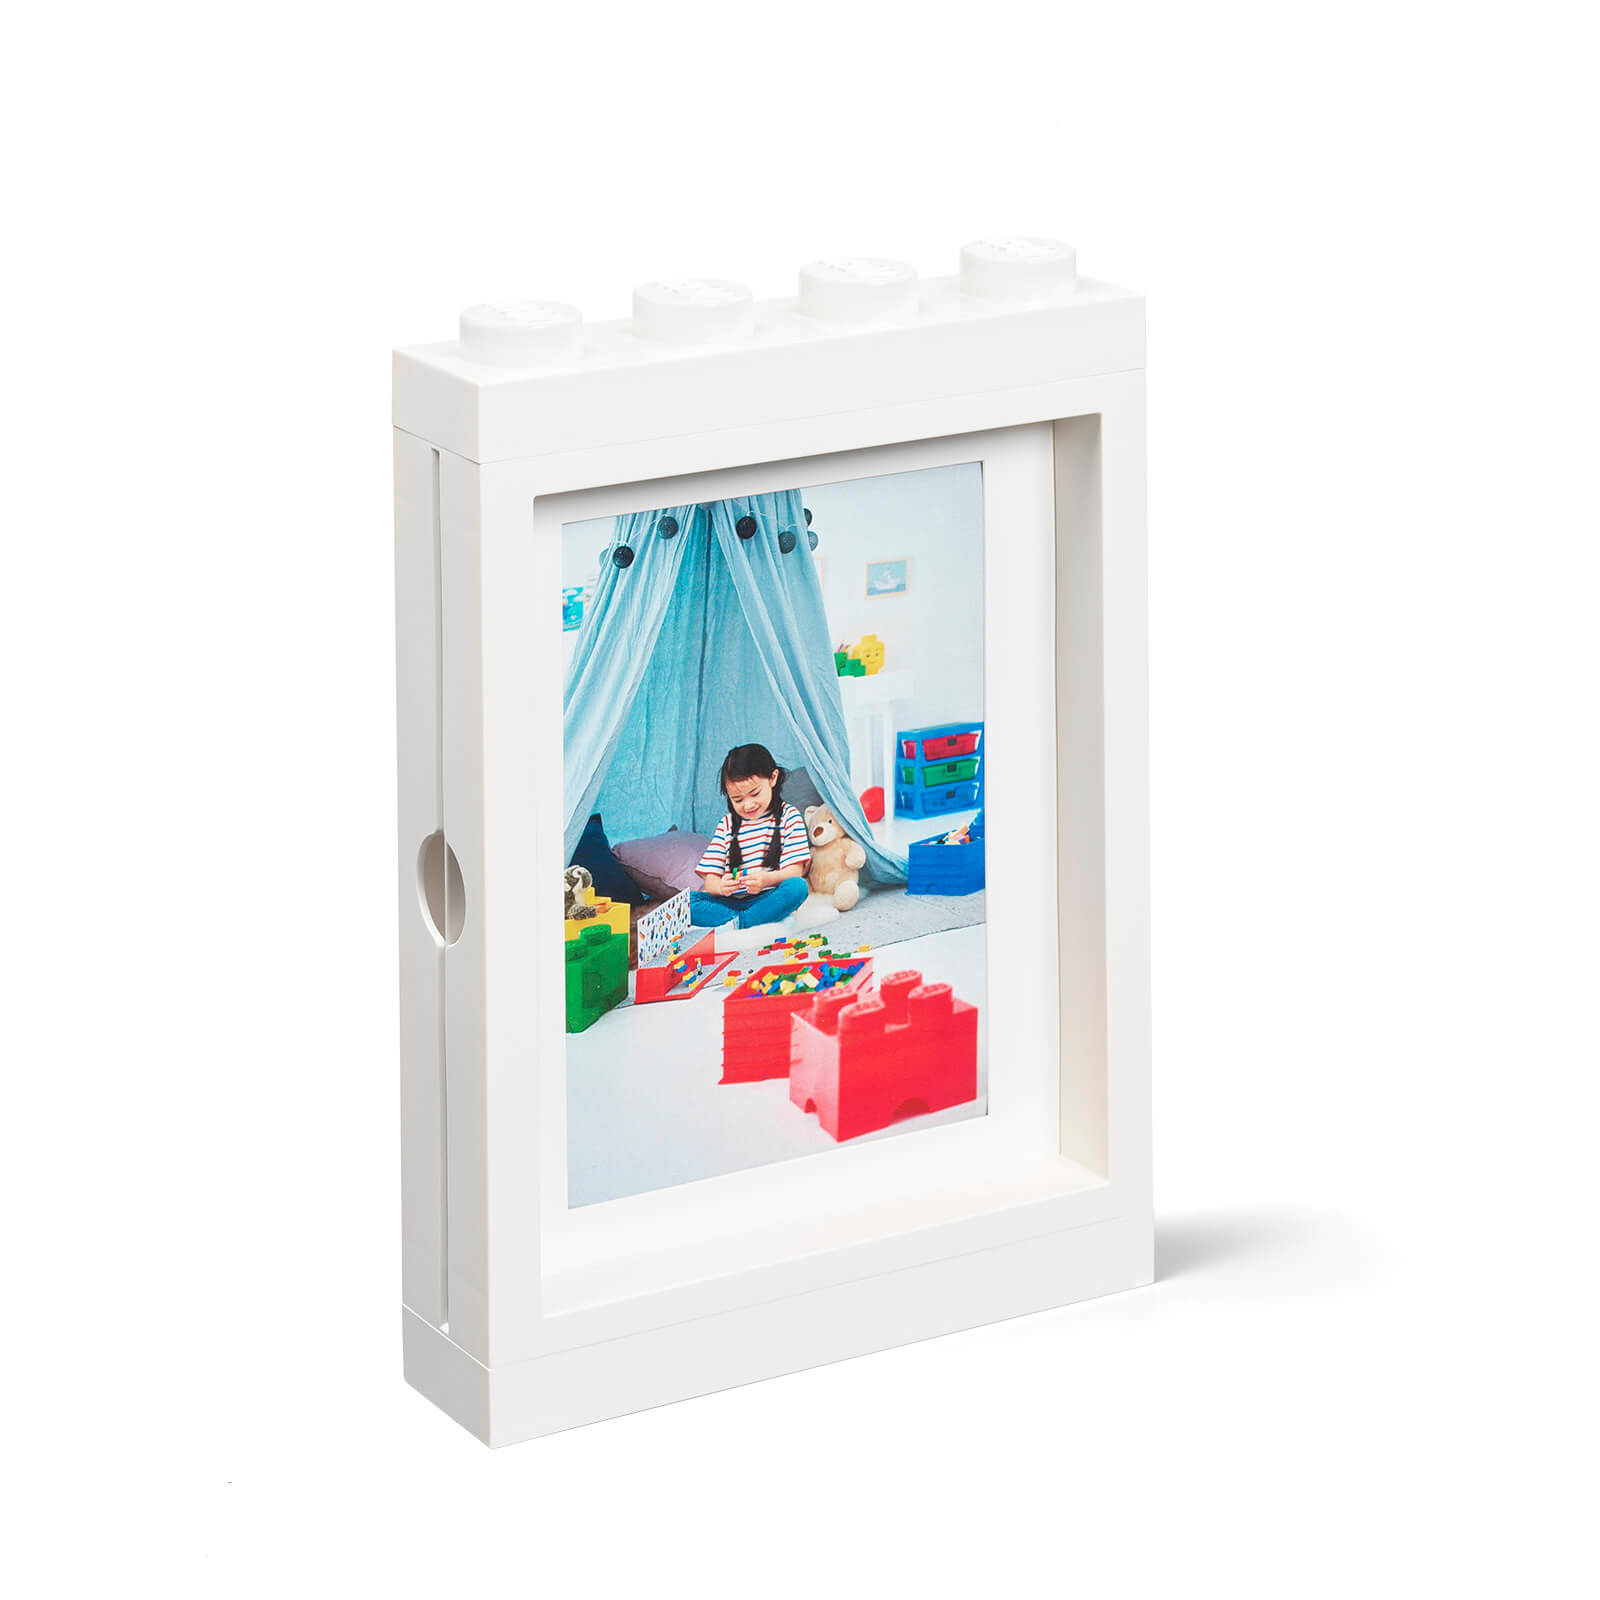 Image of LEGO Picture Frame - White